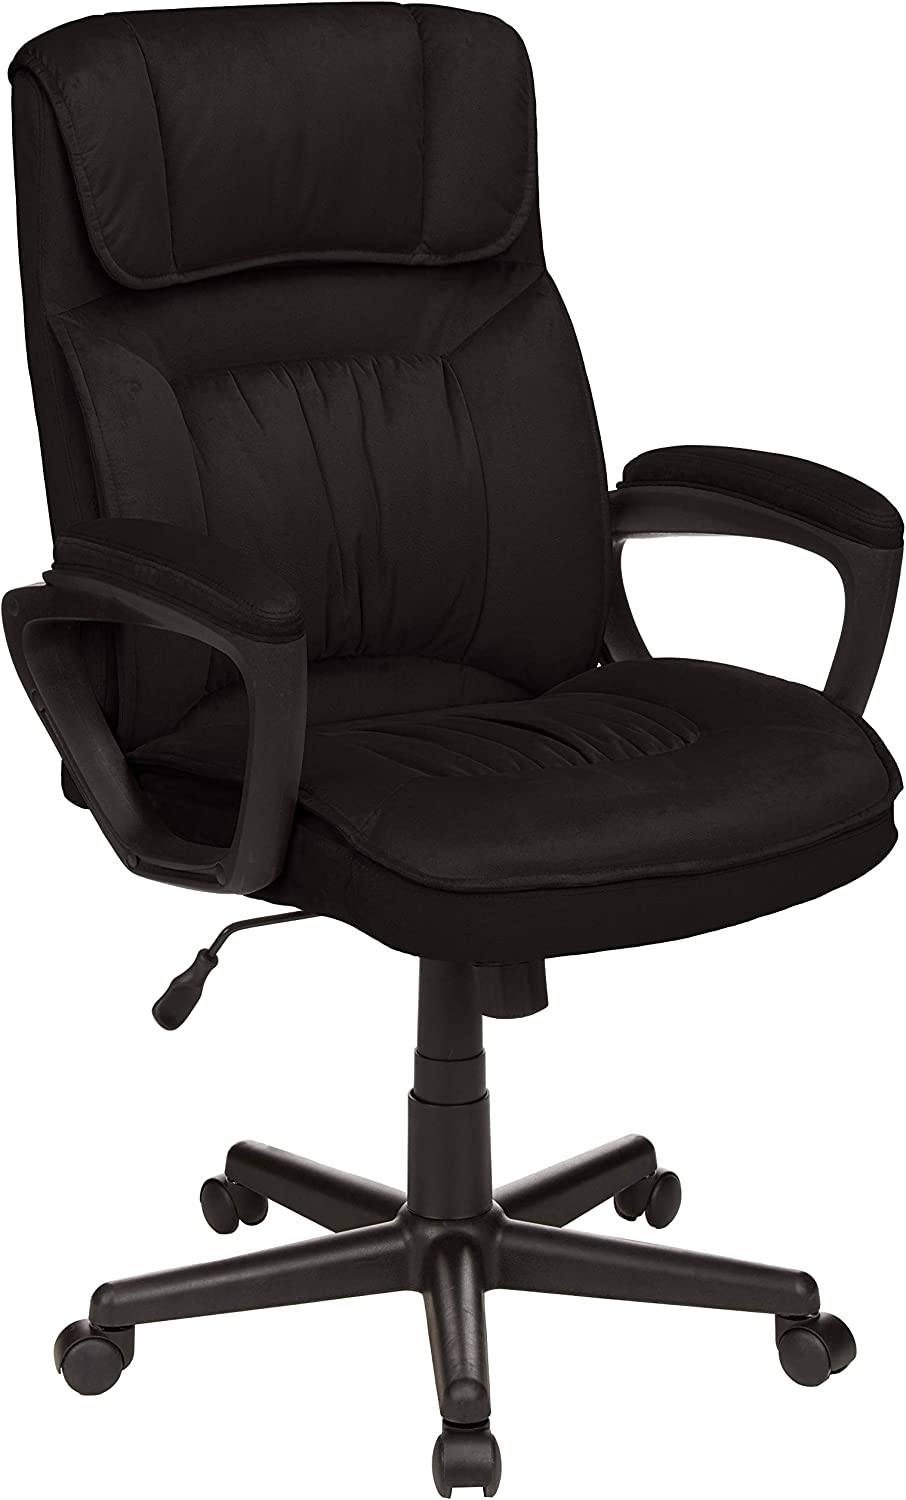 Amazon Basics Adjustable Office Chair review